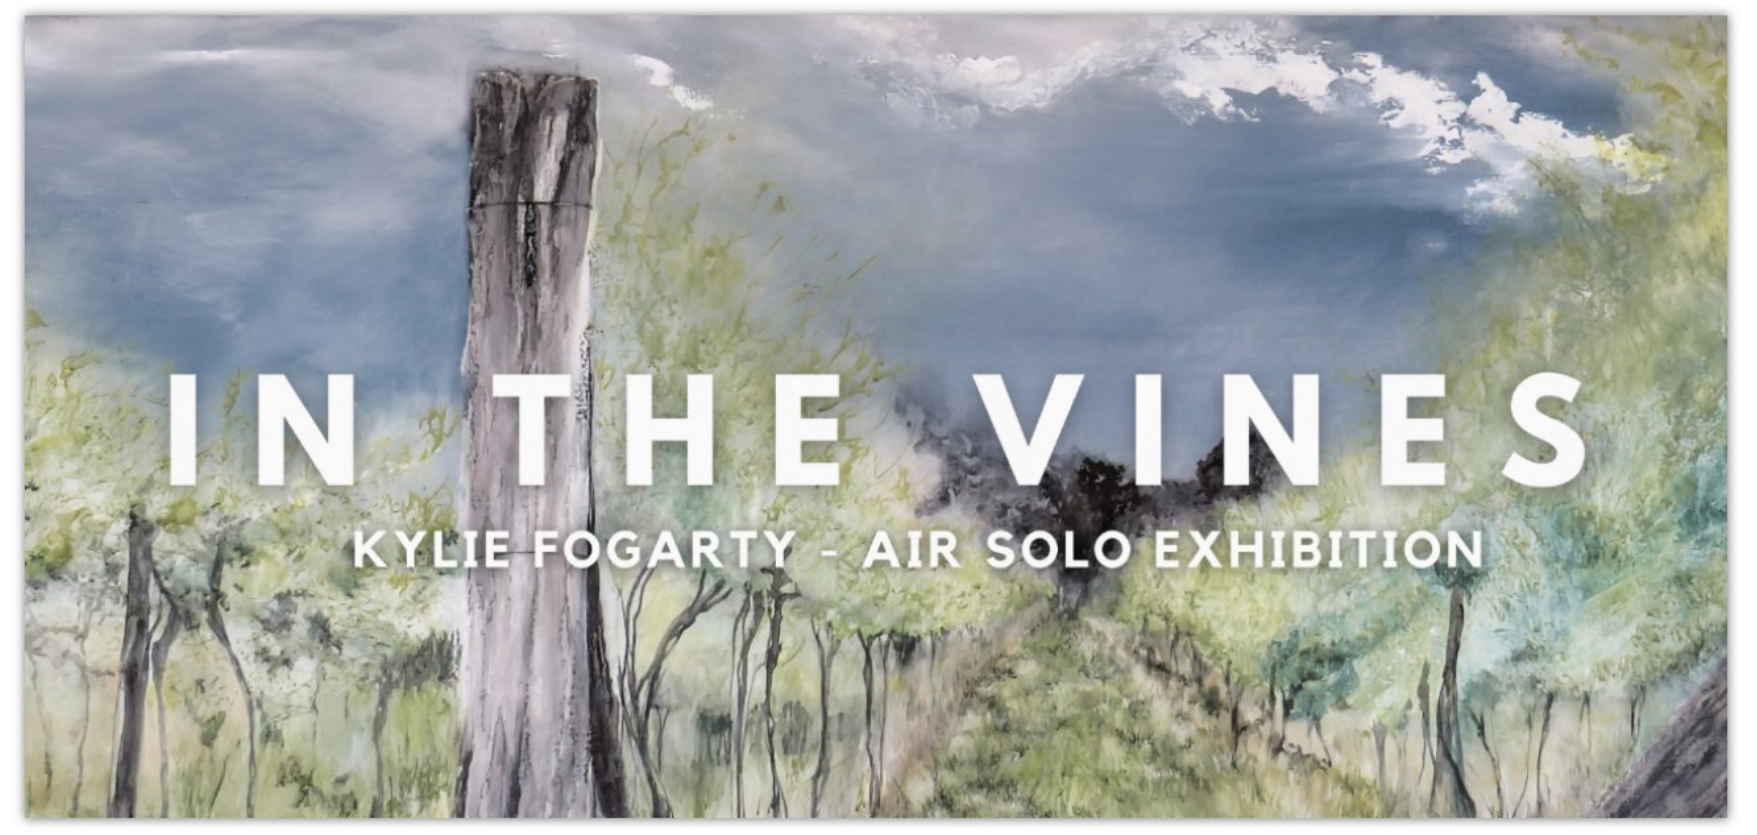 In the Vines, AiR Solo Exhibition by Kylie Fogarty